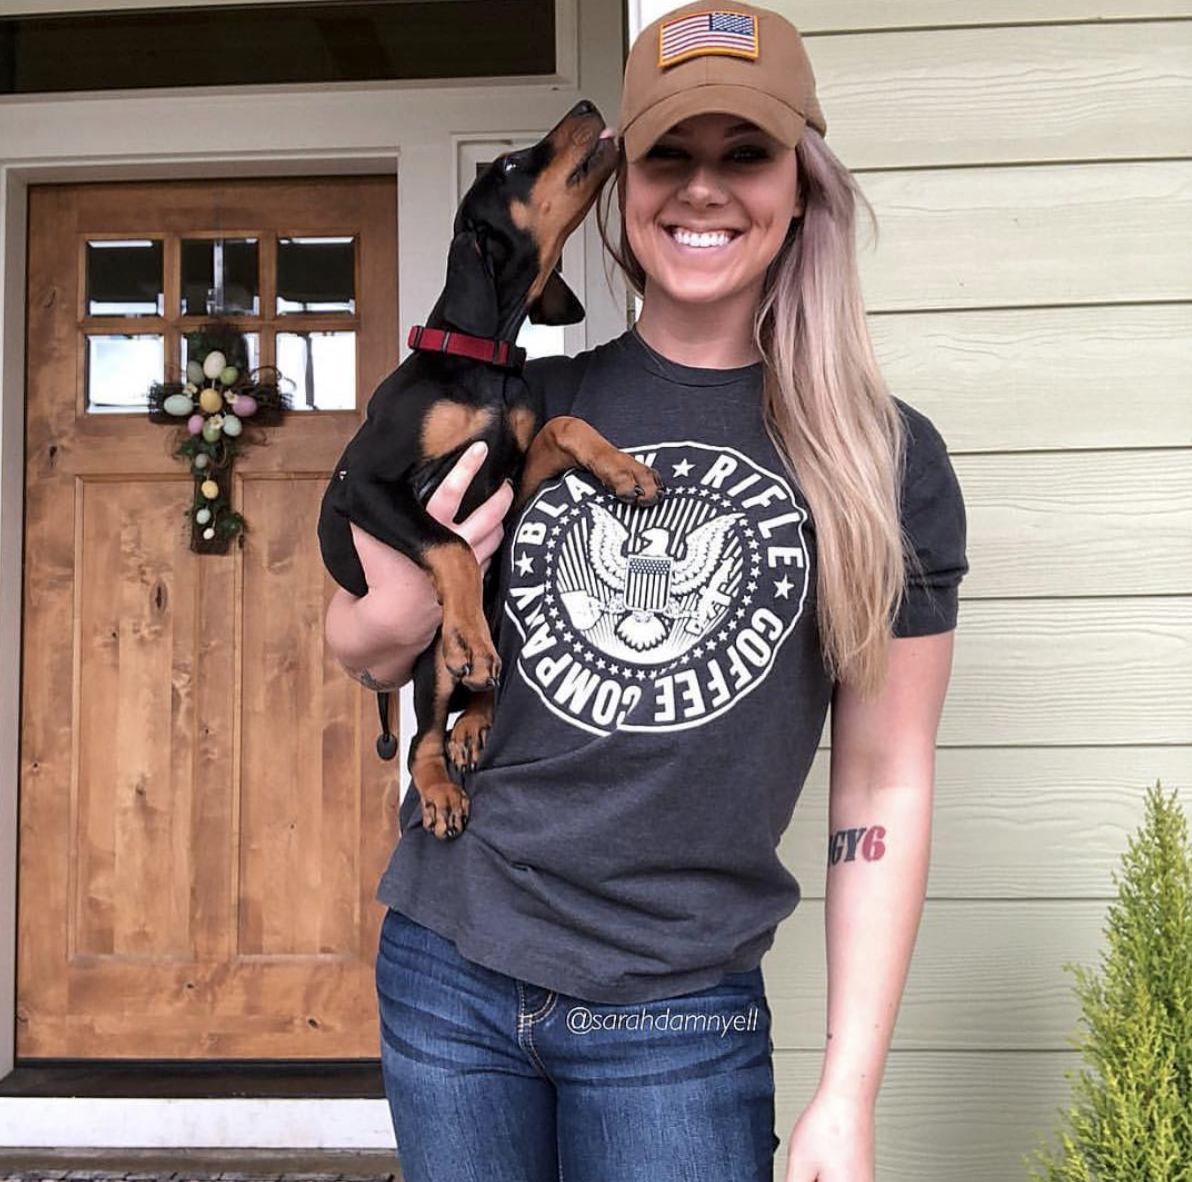 f3f342ce87e15 Black Rifle Coffee Company - Rocking our COTUS tee in style with a doggo on  hip! We have sweet shirts   Merch! Tag your pictures for a chance to be  shared!